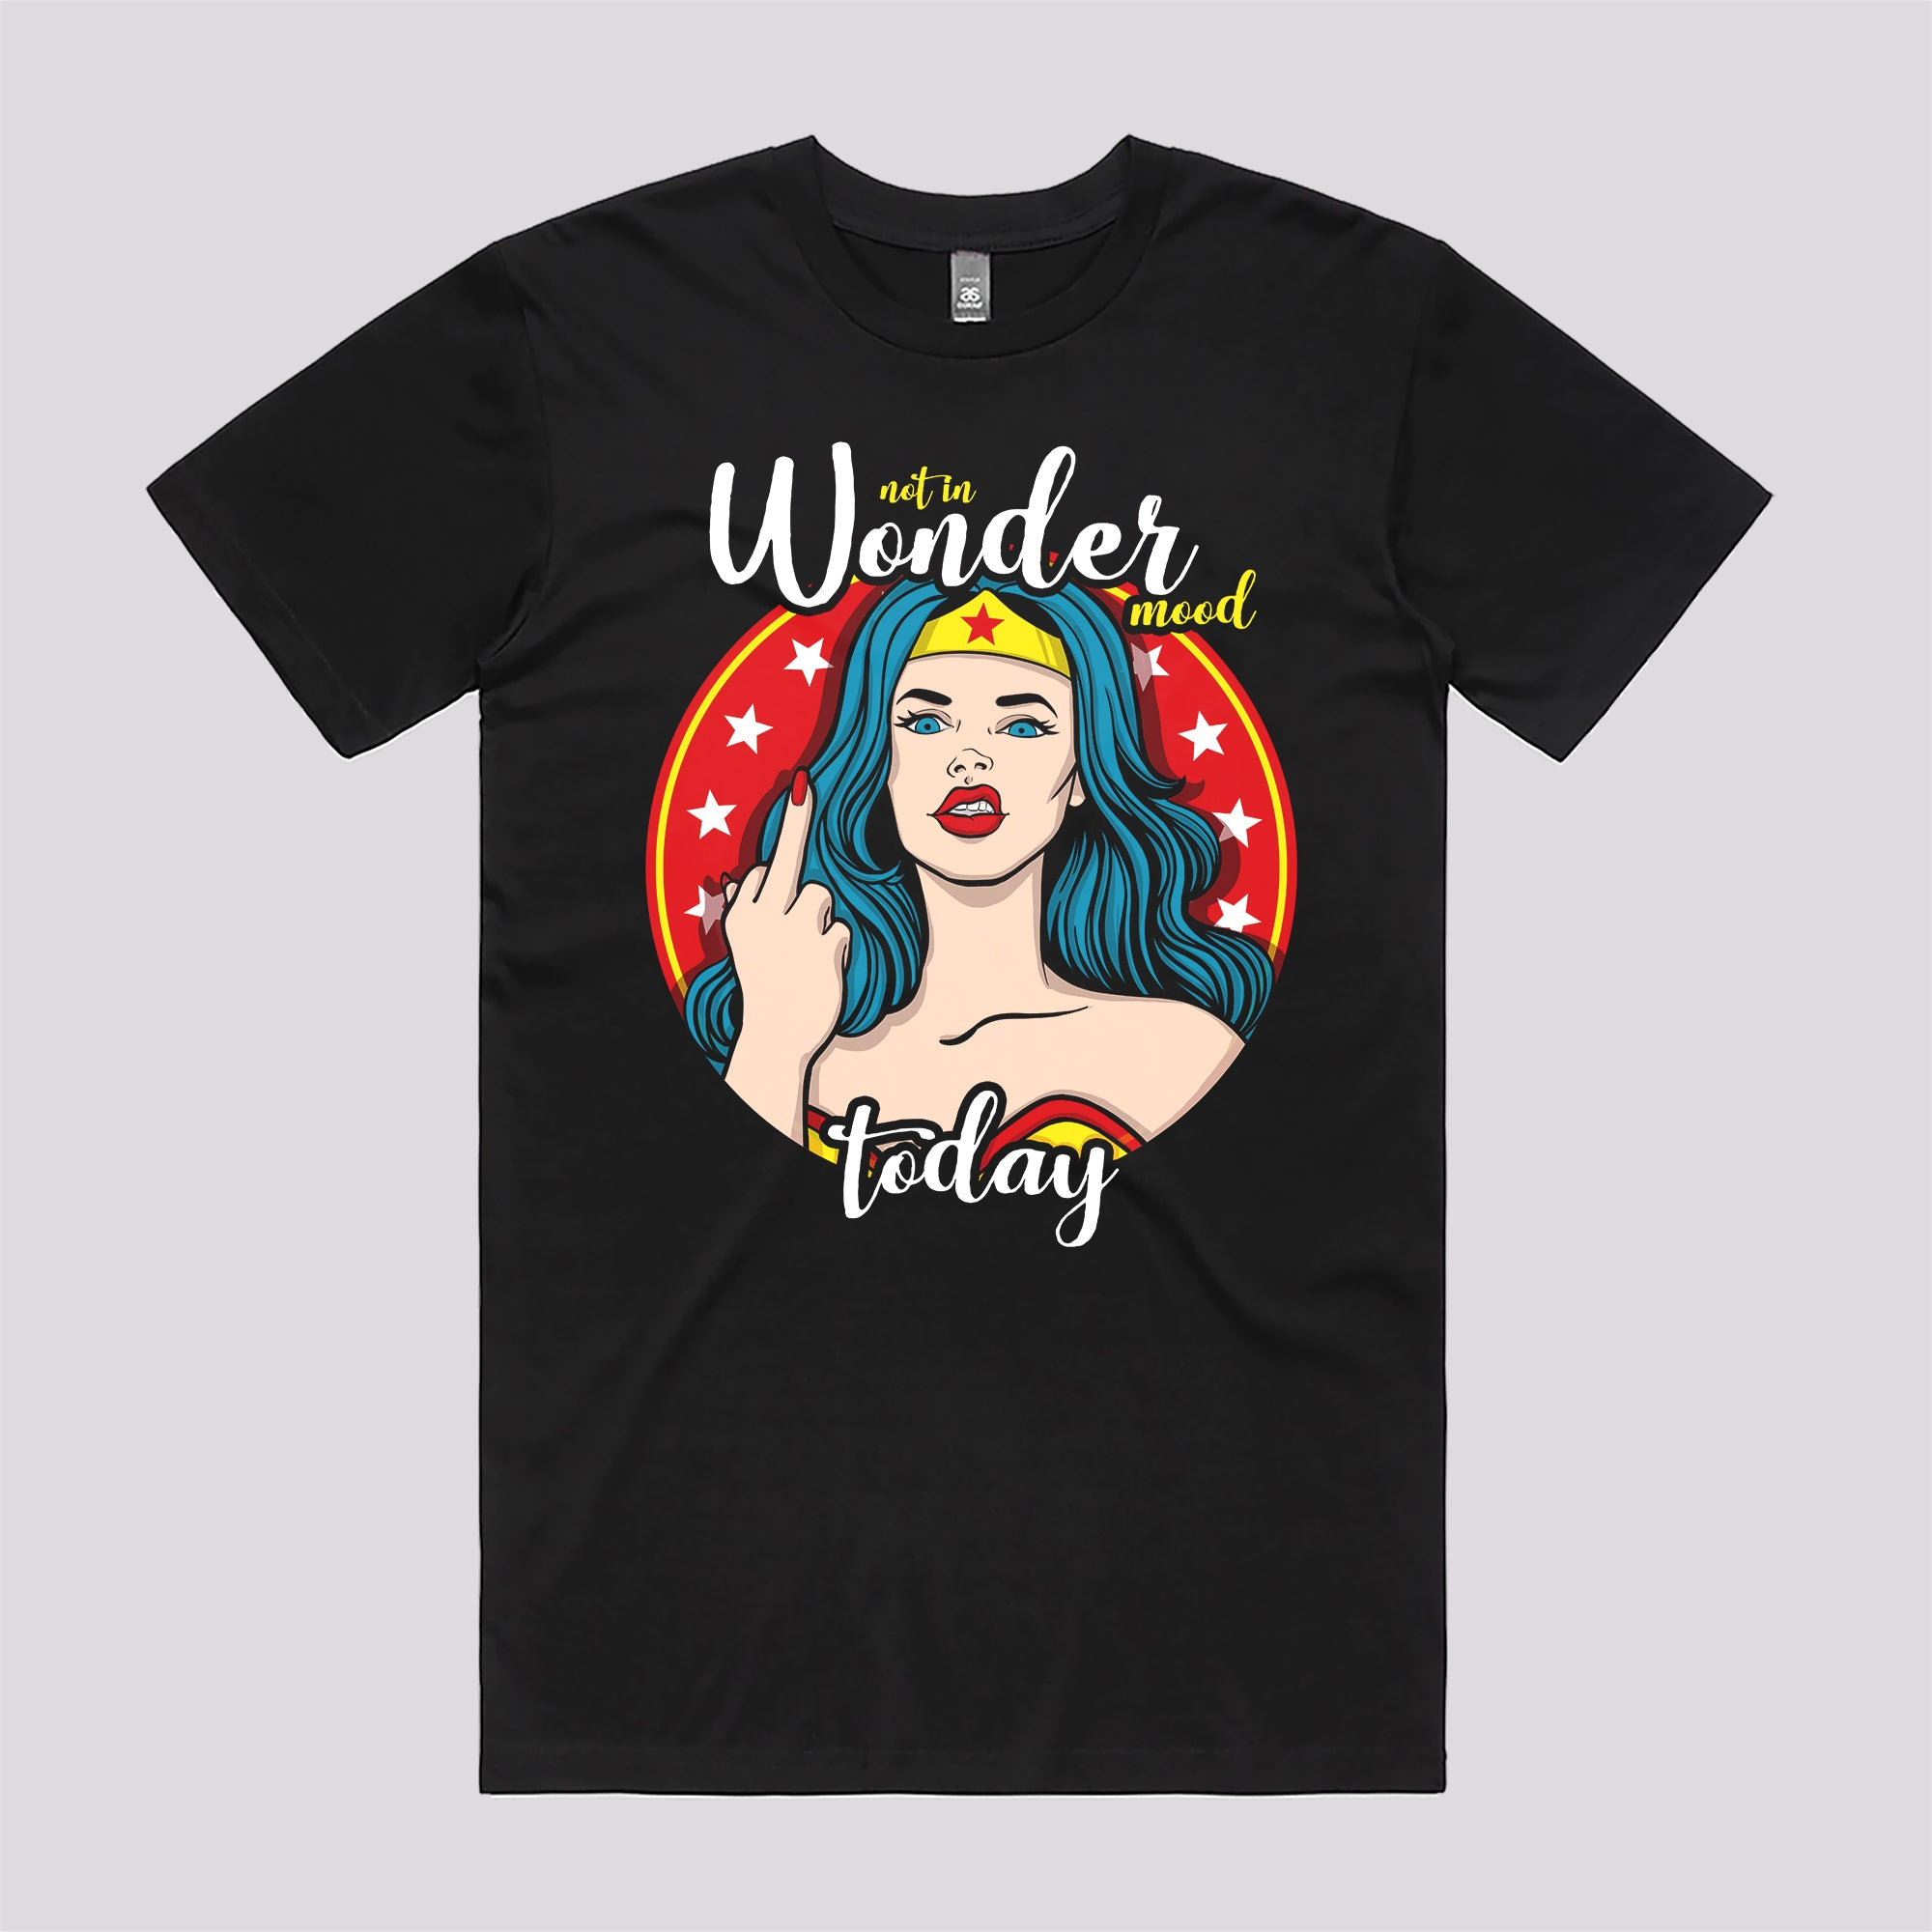 Not in Wonder Mood T-Shirt